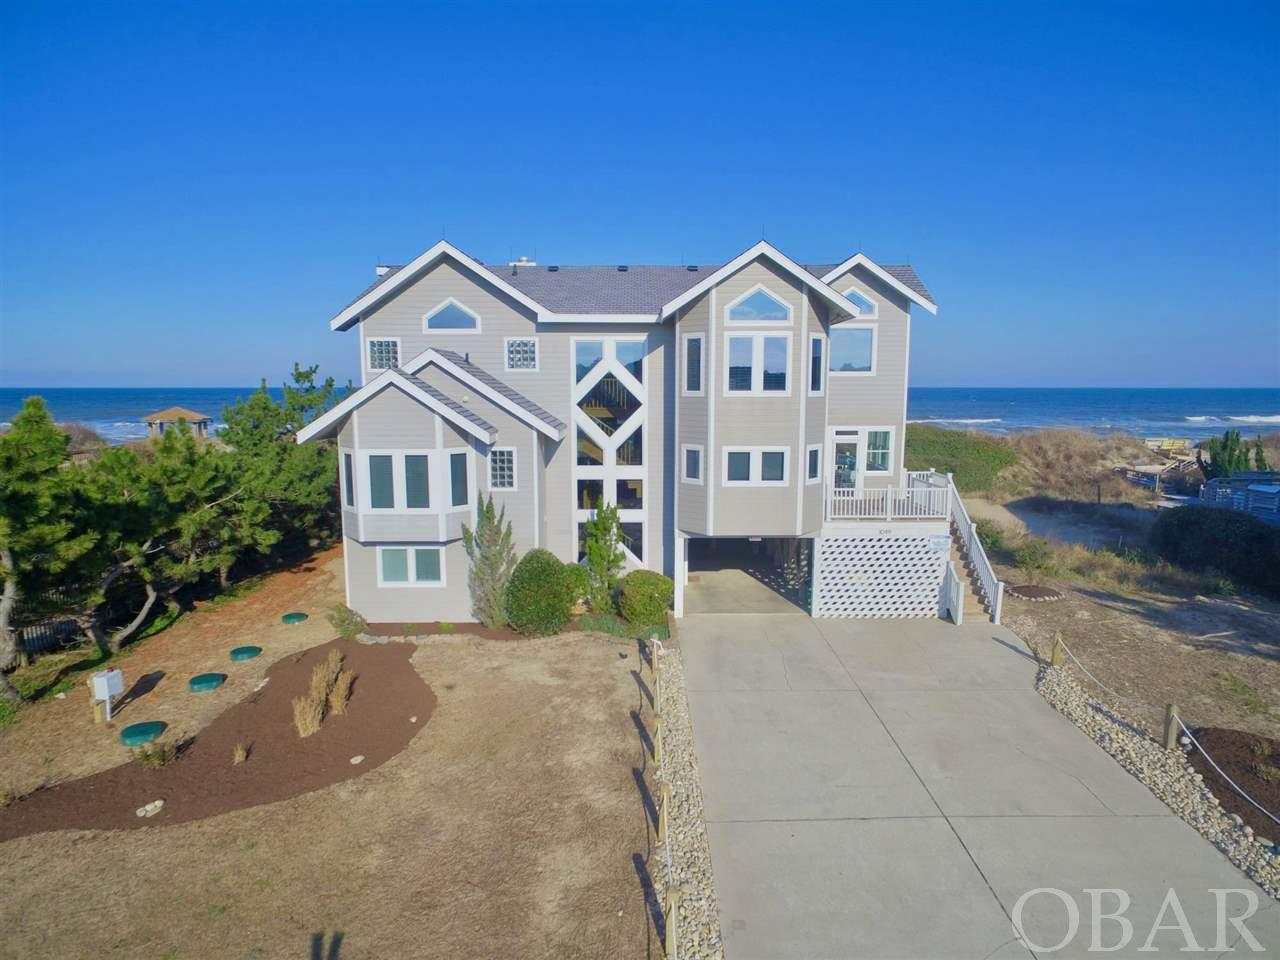 1049 Lighthouse Drive, Corolla, NC 27927, 7 Bedrooms Bedrooms, ,7 BathroomsBathrooms,Residential,For sale,Lighthouse Drive,101613